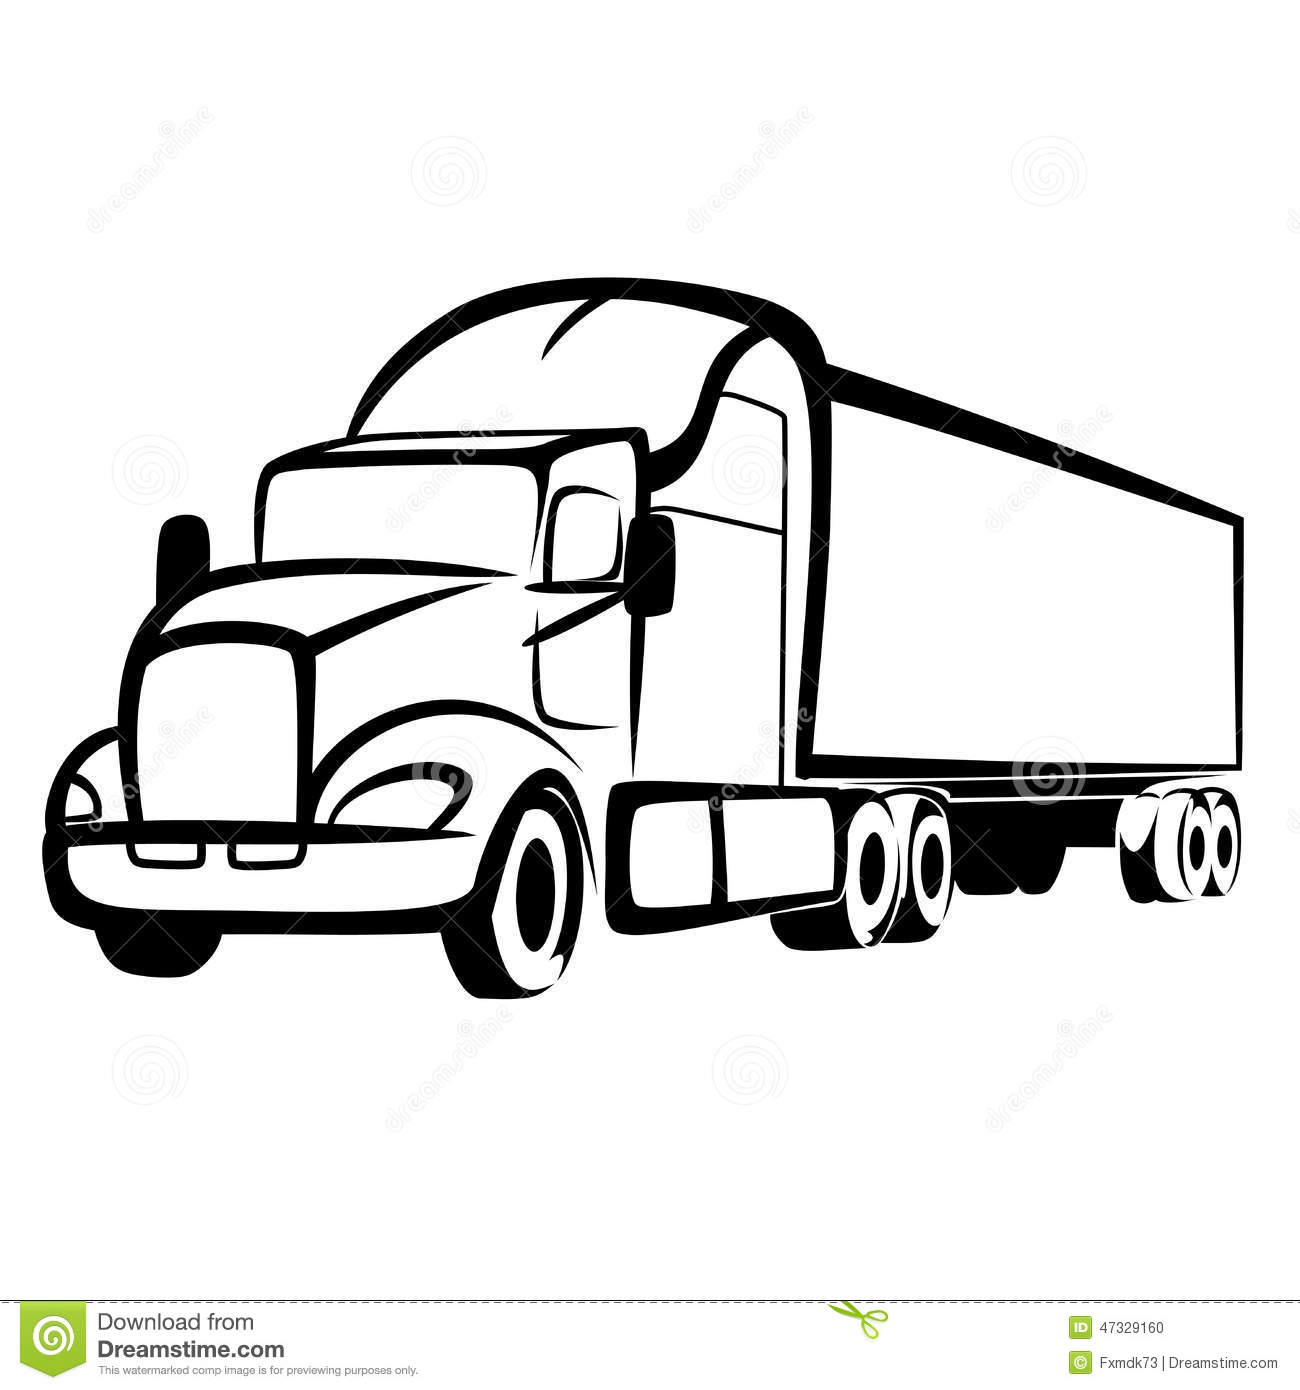 Truck Symbol Stock Vector Illustration Of Traffic